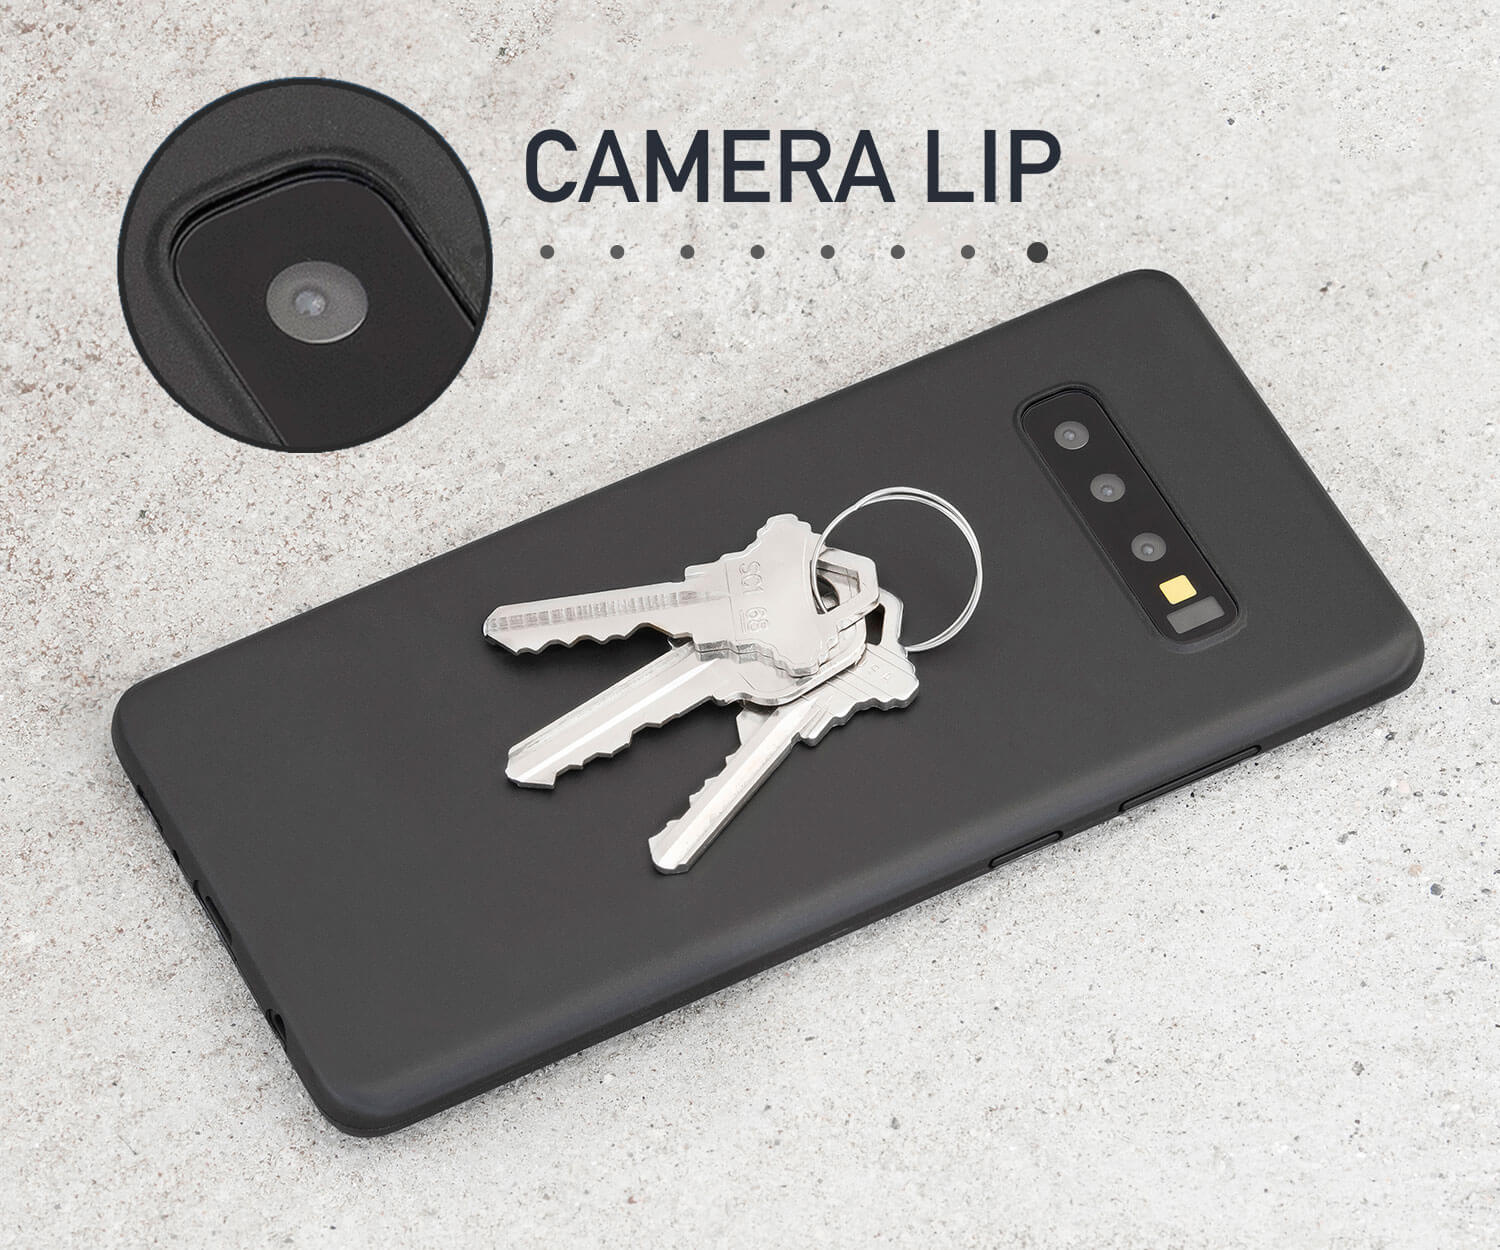 Thin black Galaxy S10+ case that adds camera and scratch protection